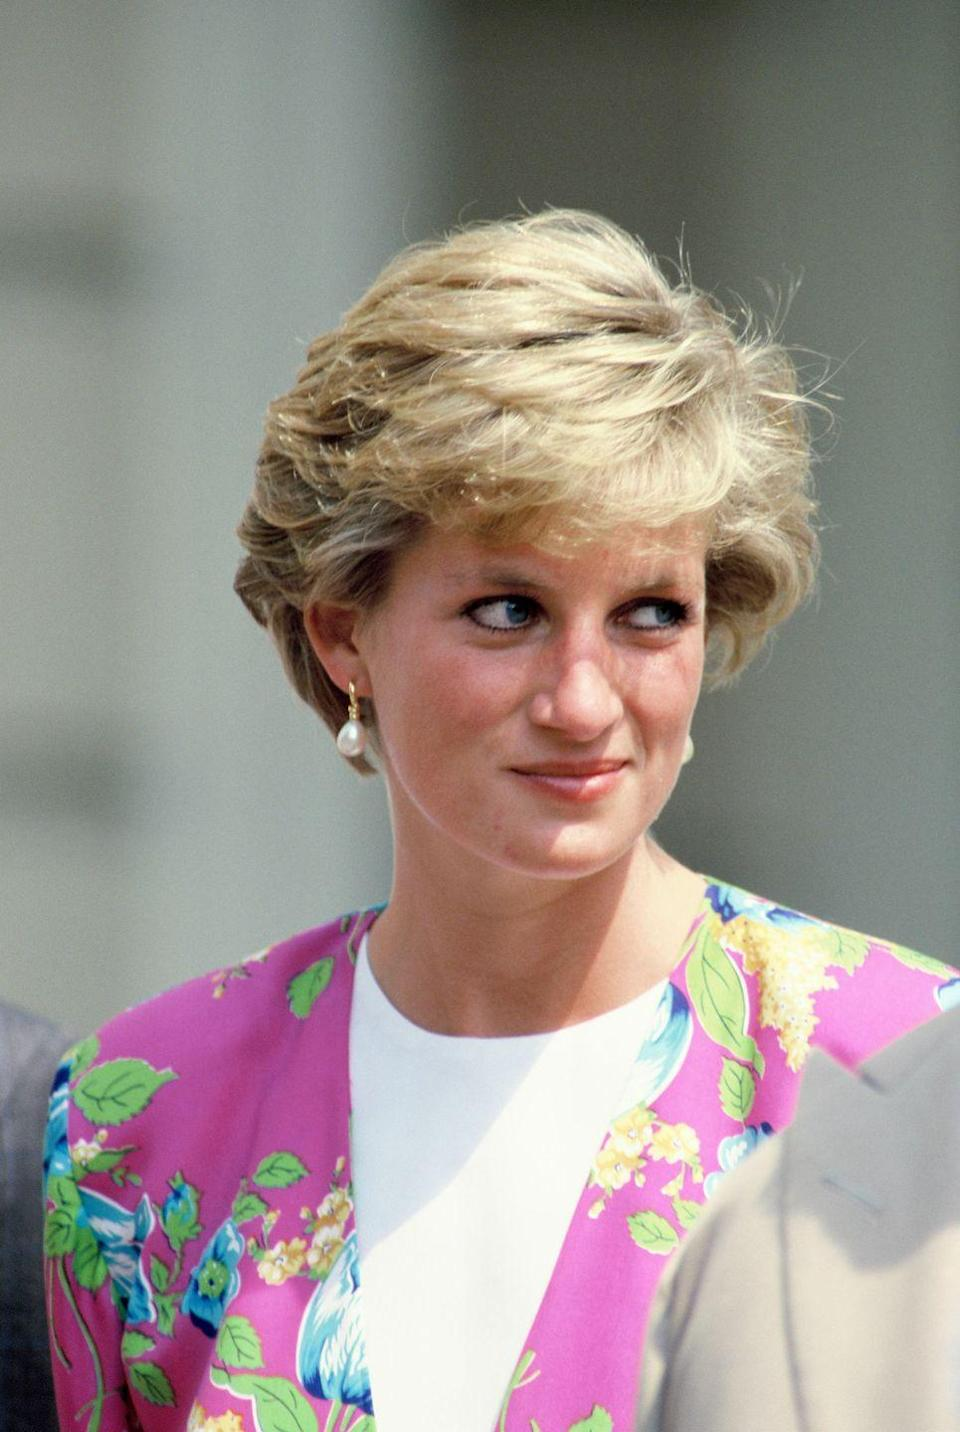 """<p>Ever the trendsetter, Princess Diana influenced women of the world to go short with her famous crop created by <a href=""""http://www.harpersbazaar.com/beauty/hair/news/a13447/princess-diana-haircut-sam-mcknight/"""" rel=""""nofollow noopener"""" target=""""_blank"""" data-ylk=""""slk:hairstylist Sam McKnight"""" class=""""link rapid-noclick-resp"""">hairstylist Sam McKnight</a>. </p>"""